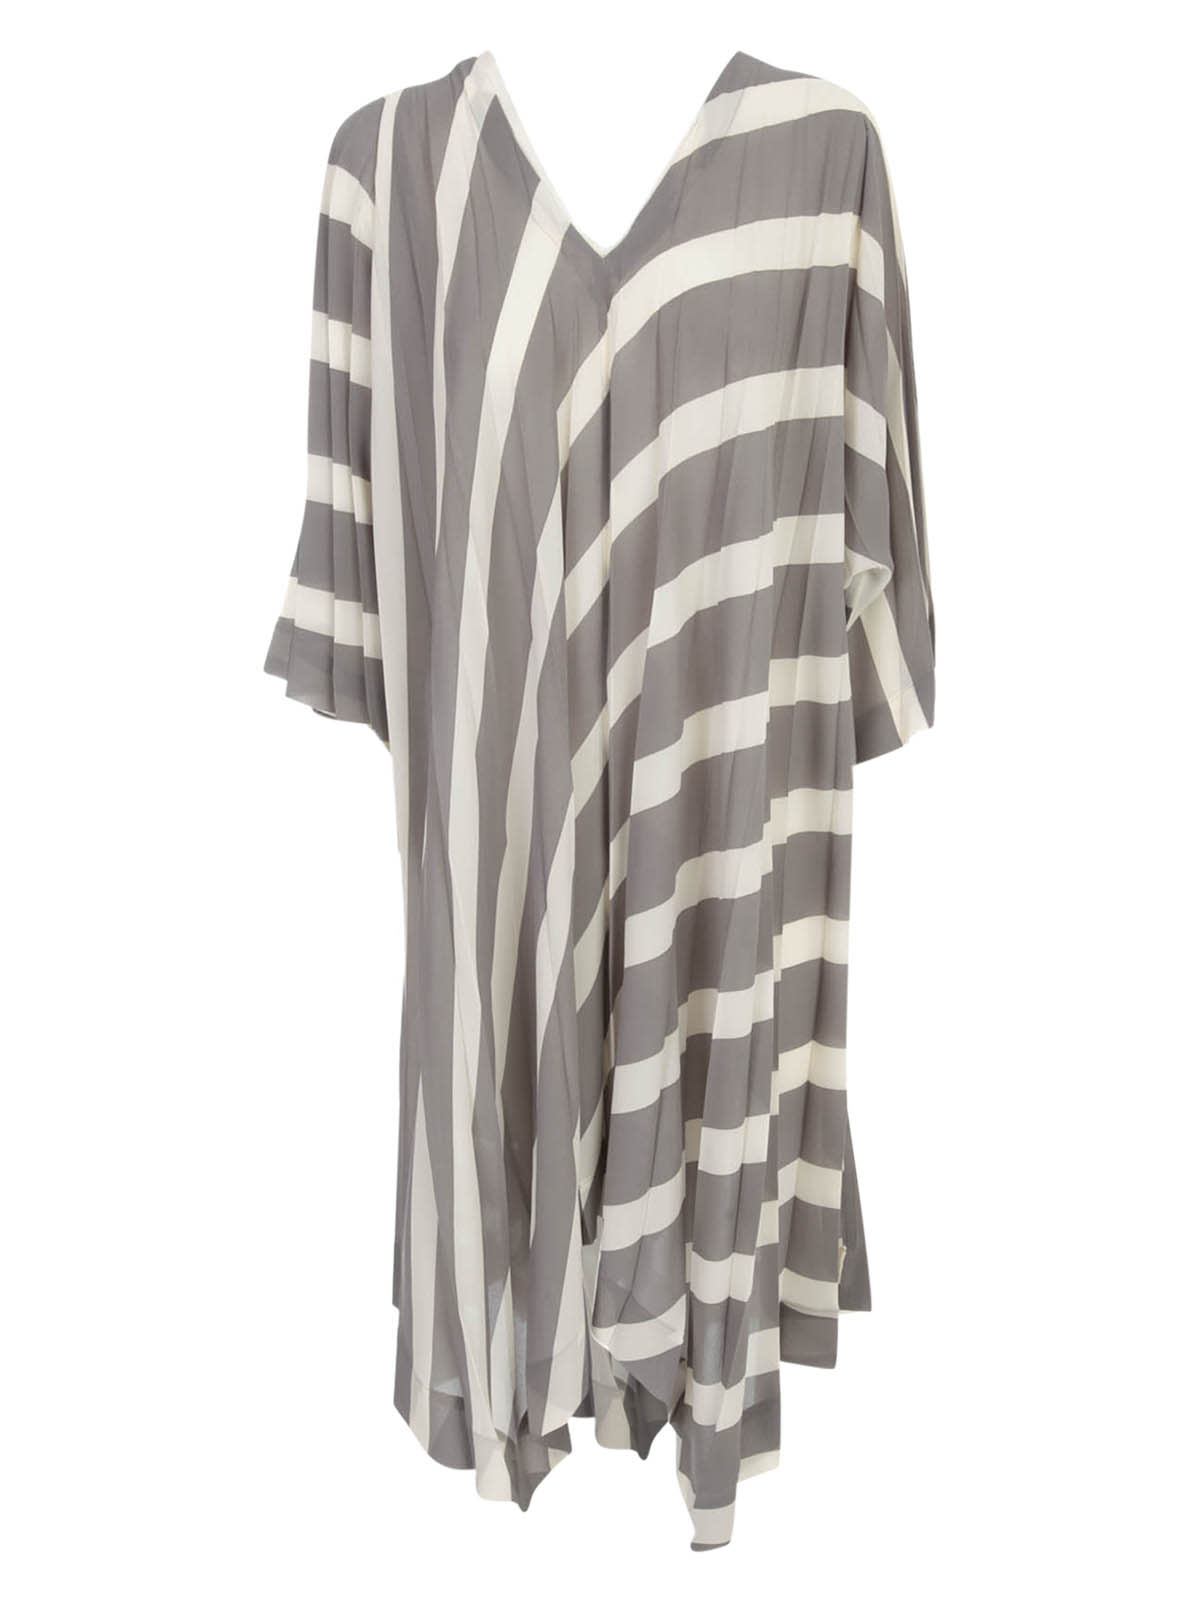 Buy Issey Miyake Pleated Tunic Dress 3/4s V Neck online, shop Issey Miyake with free shipping